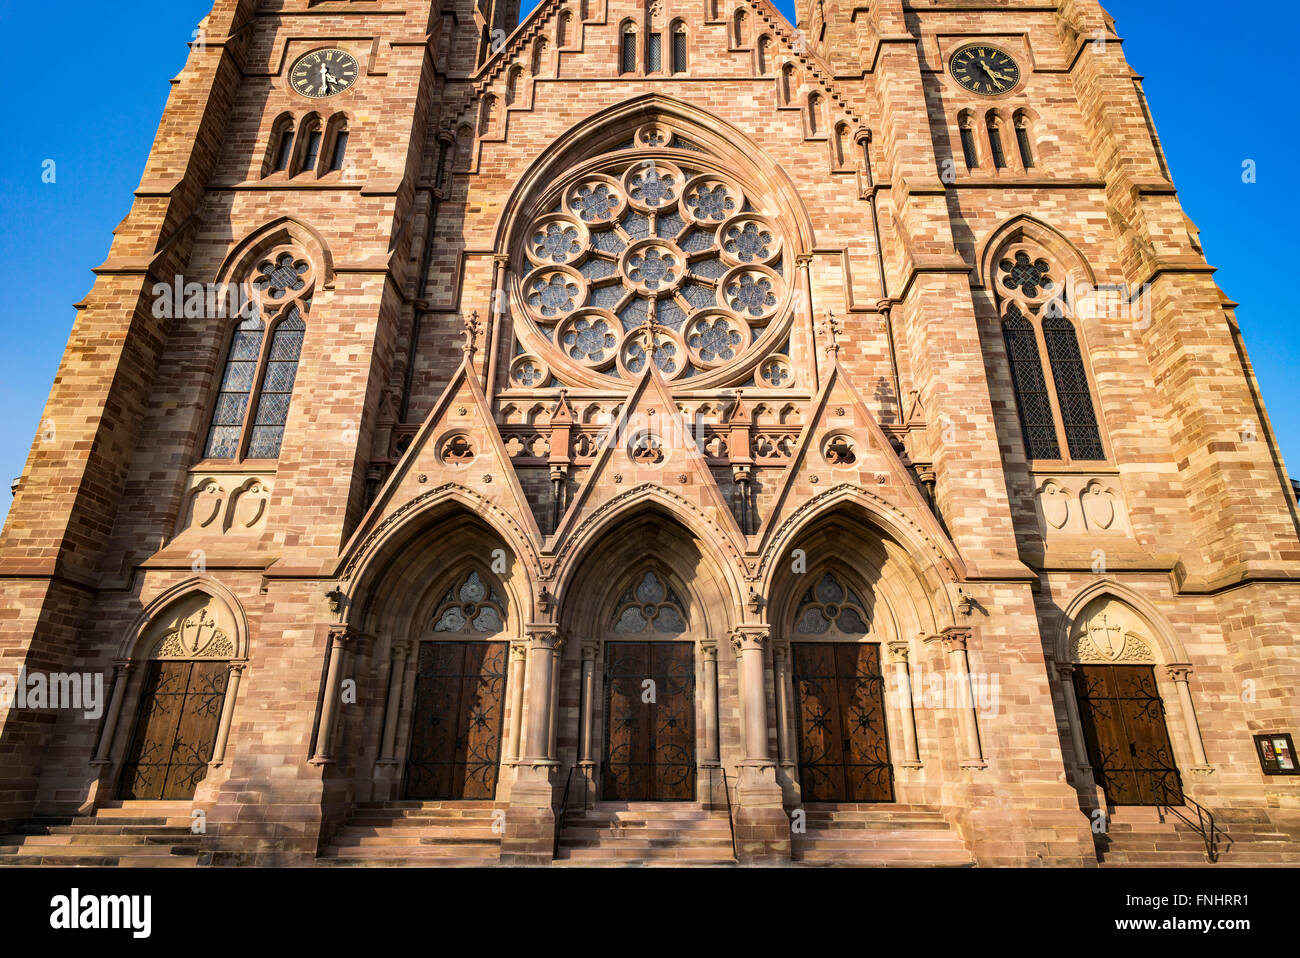 Portals and rose window of St Paul protestant church 19th century, Strasbourg, Alsace, France - Stock Image